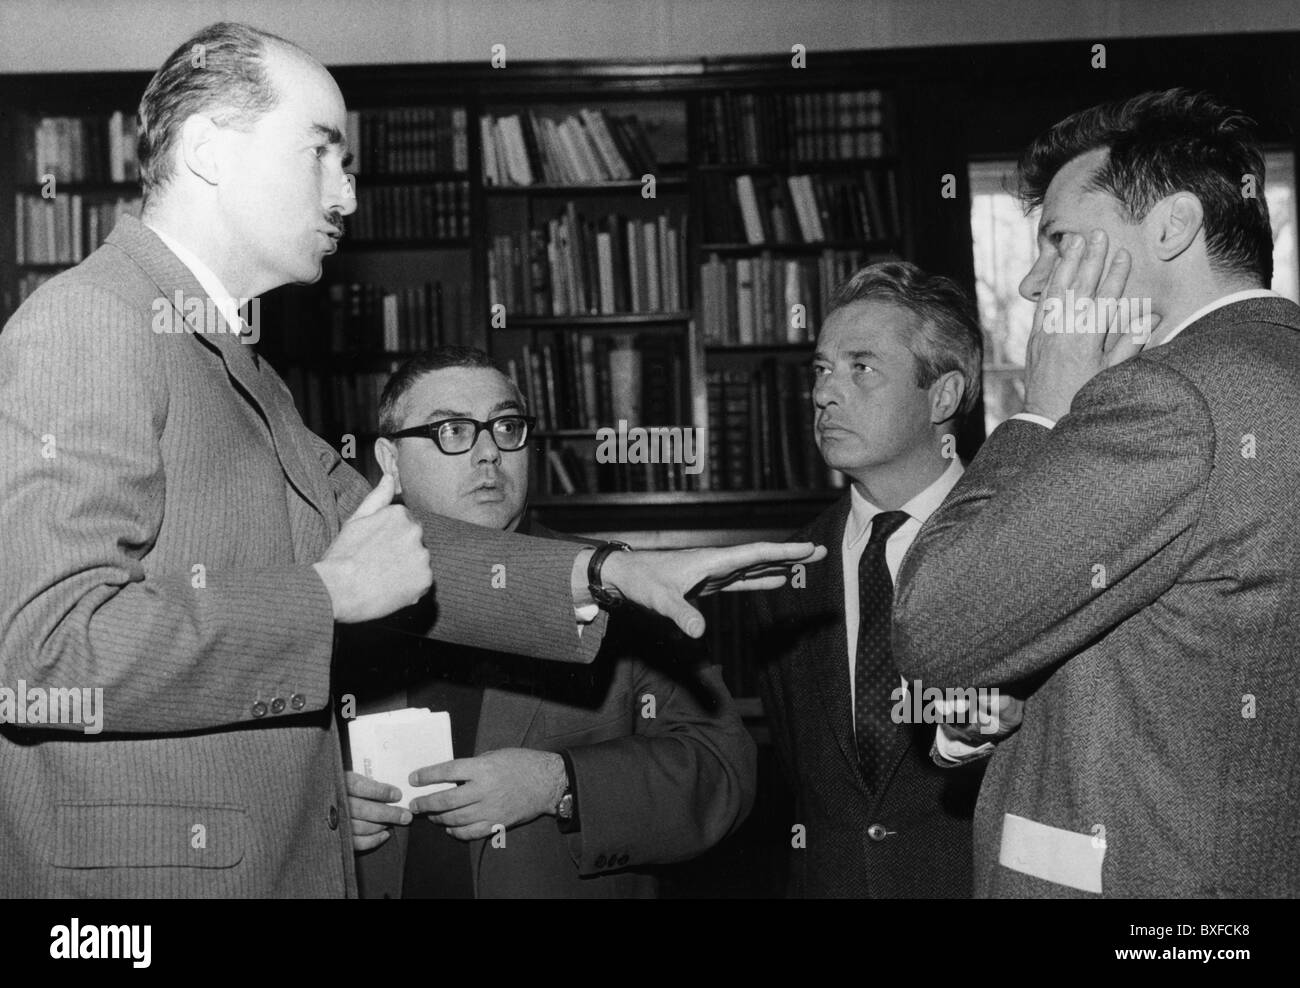 Habsburg, Otto von. 20.11.1912 - 4.7.2011, Austrian - German politician (CSU), with authors Hellmut Andics and Michel - Stock Image